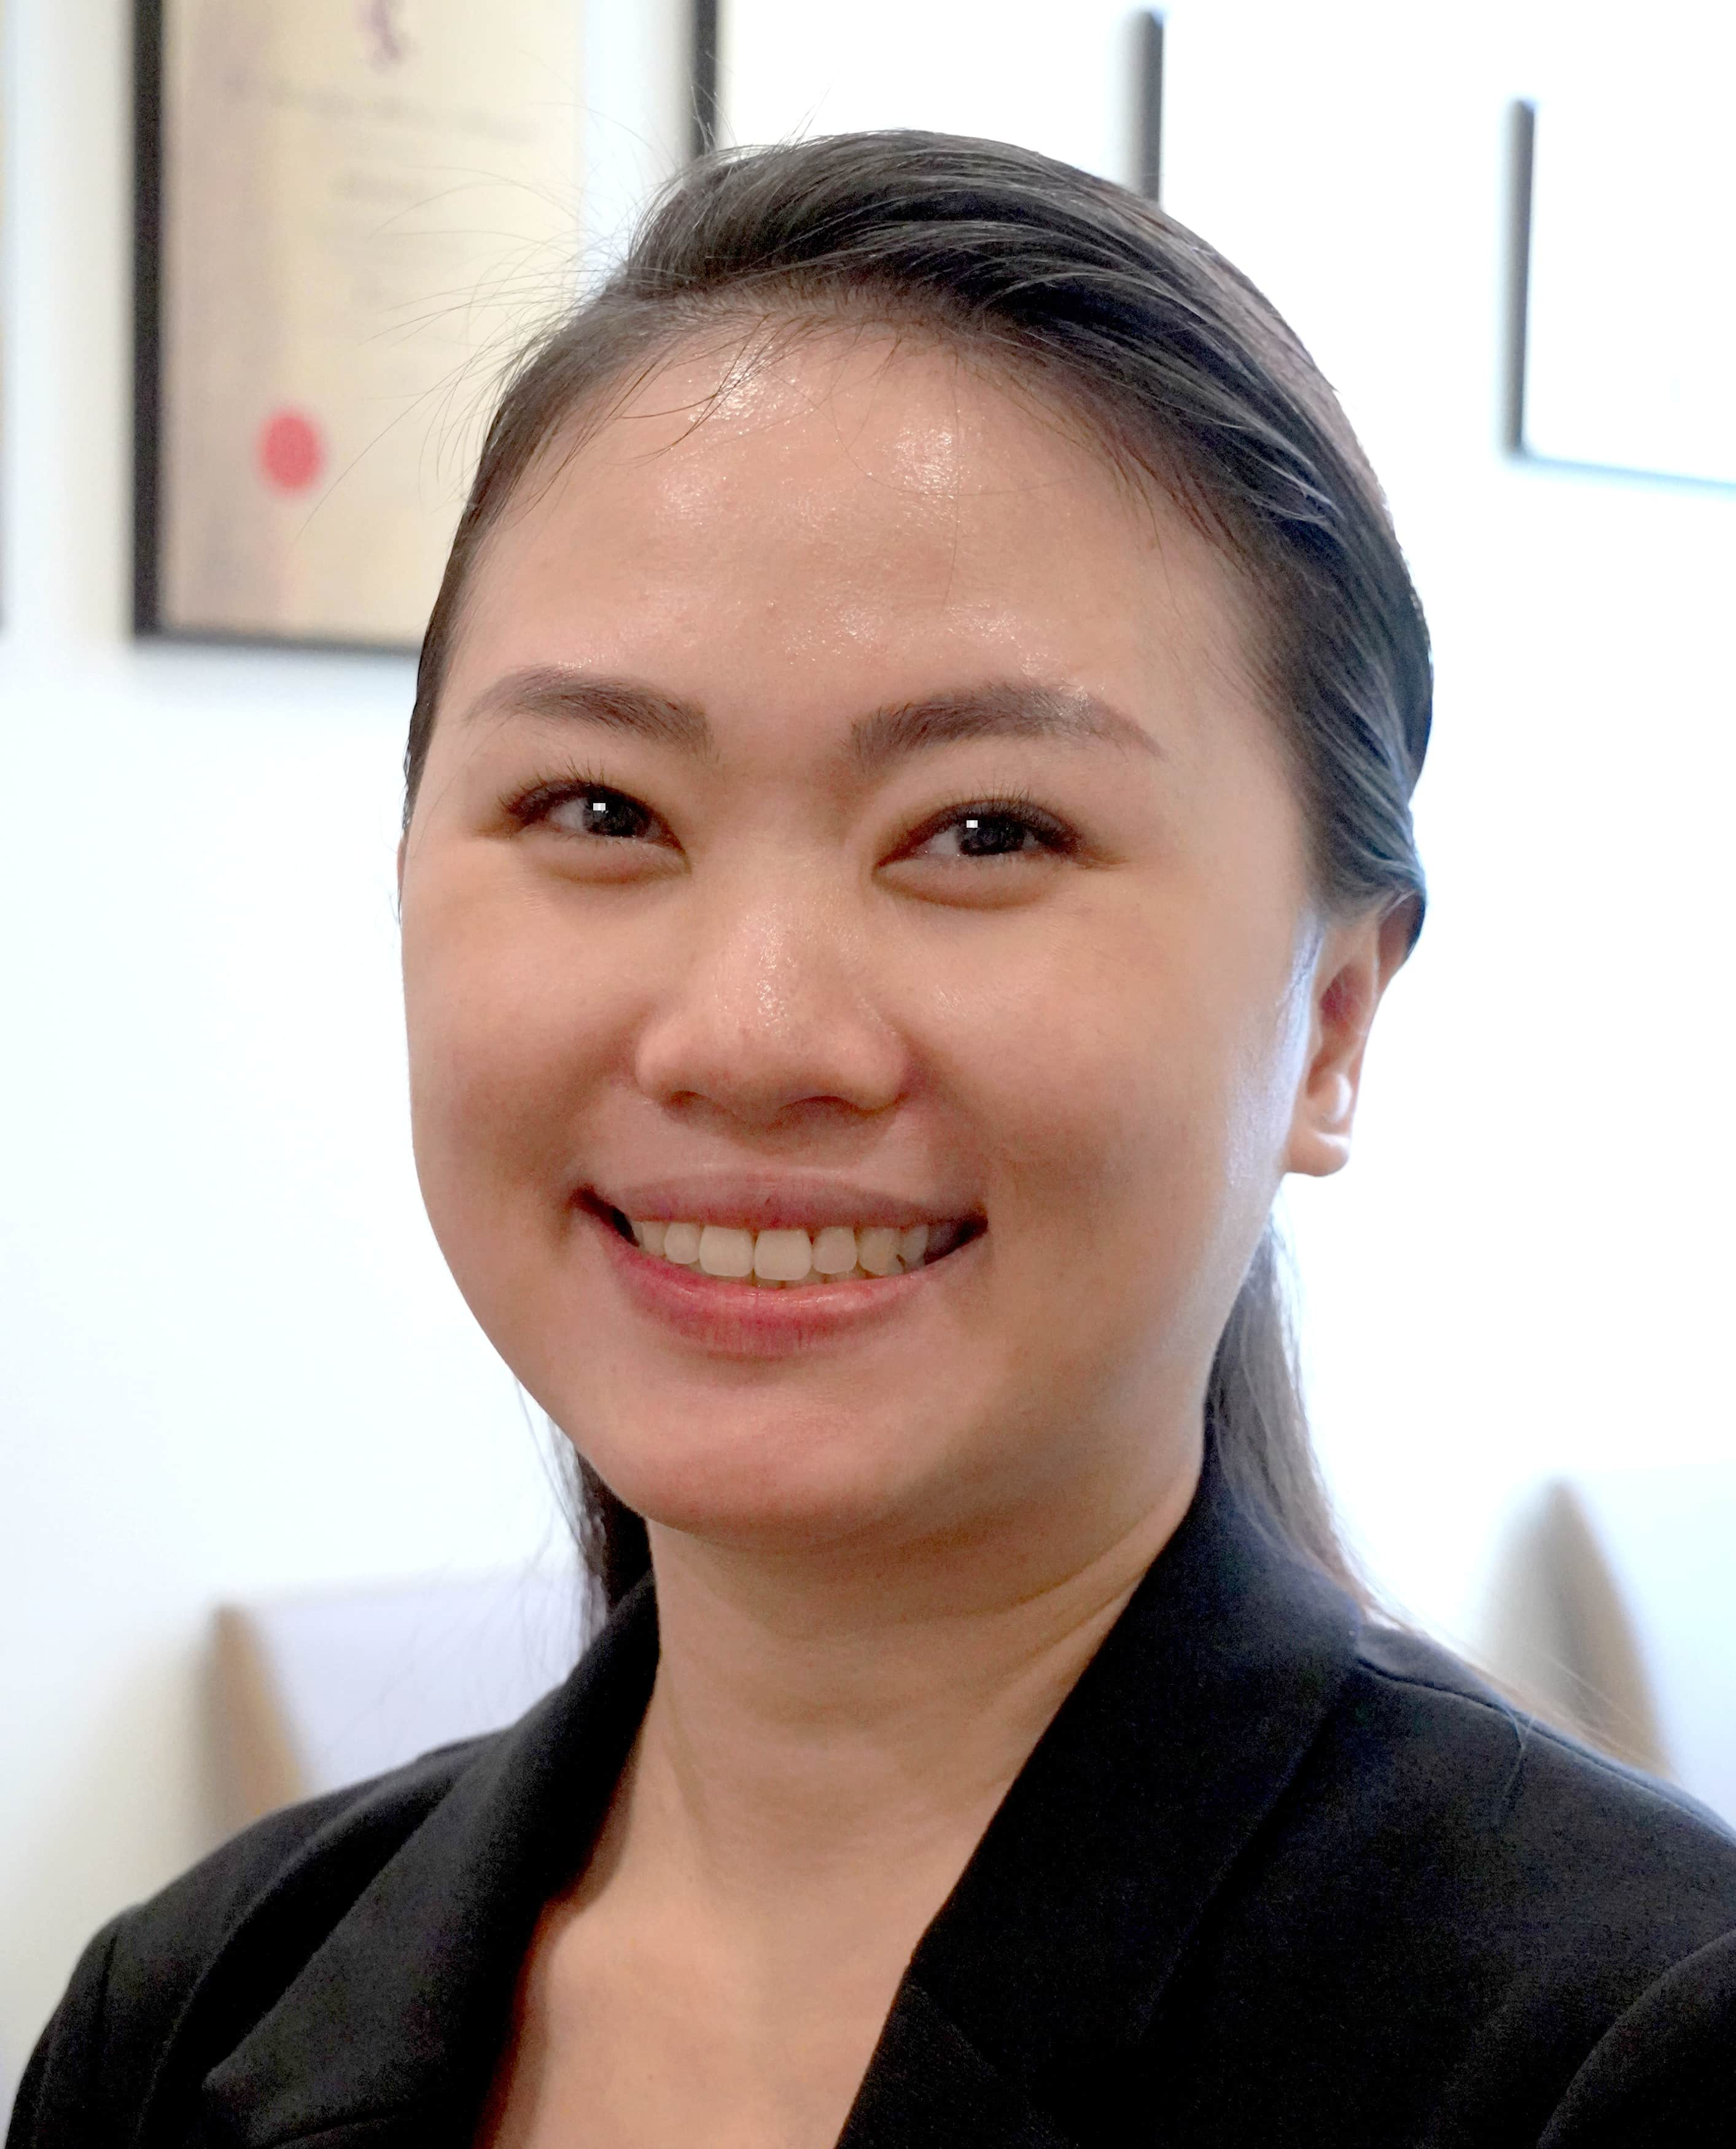 Yu Ling Receptionist and Clinic Assistant at Ophthalmic Consultants